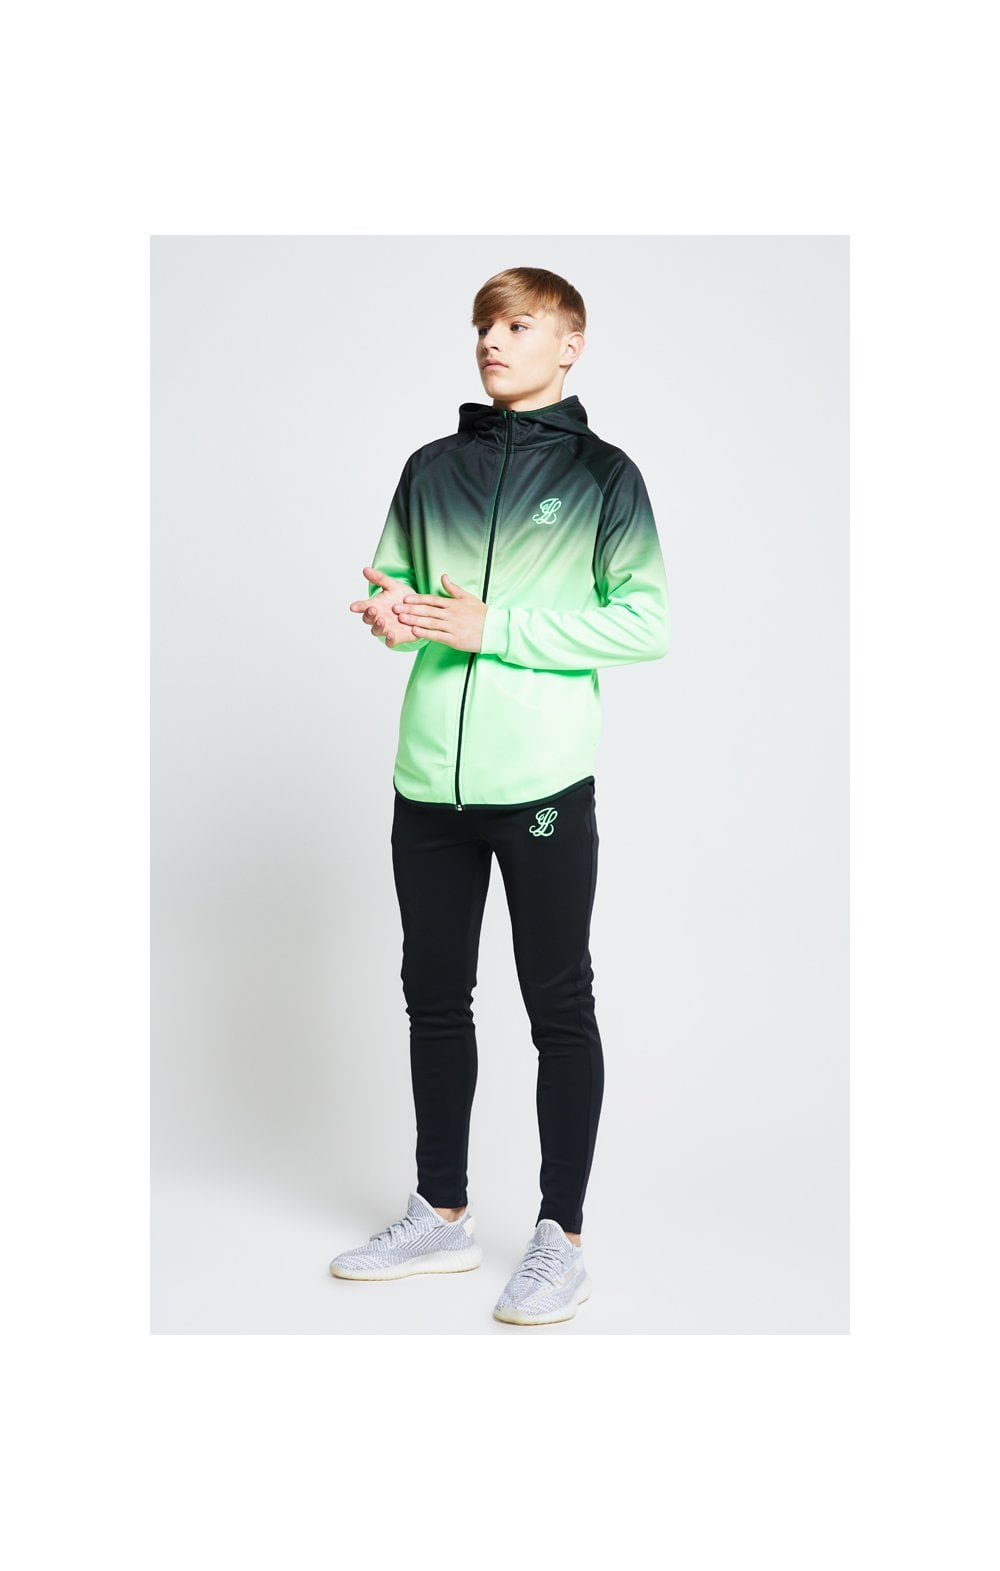 Illusive London Athlete Pants – Black & Neon Green (1)